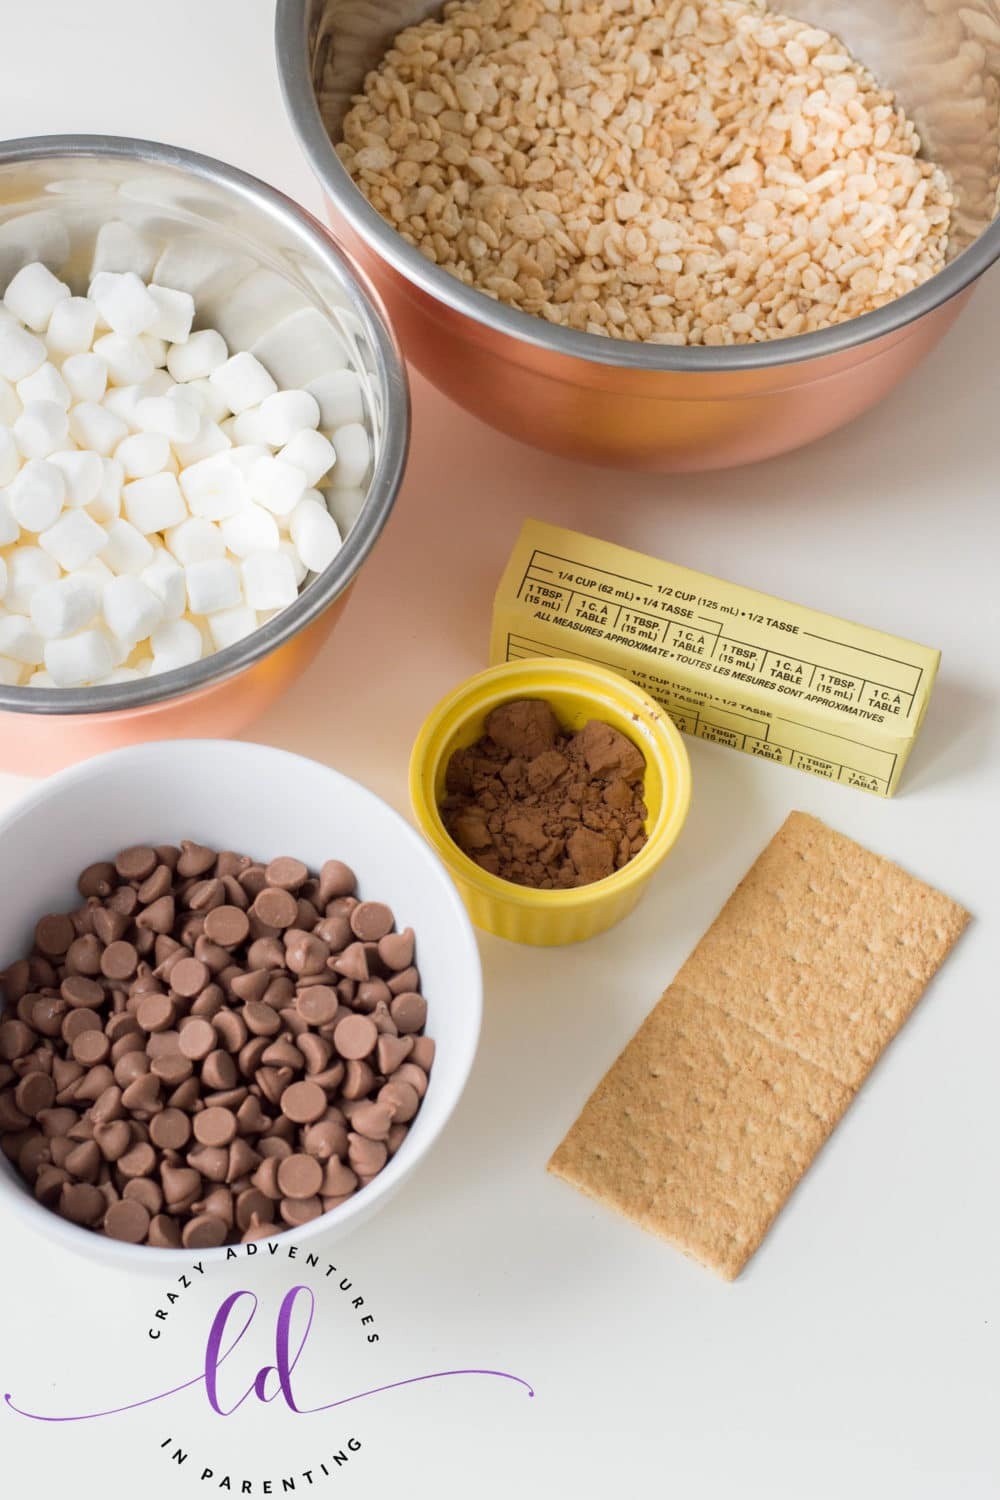 Ingredients to Make S'mores Rice Krispies Treats